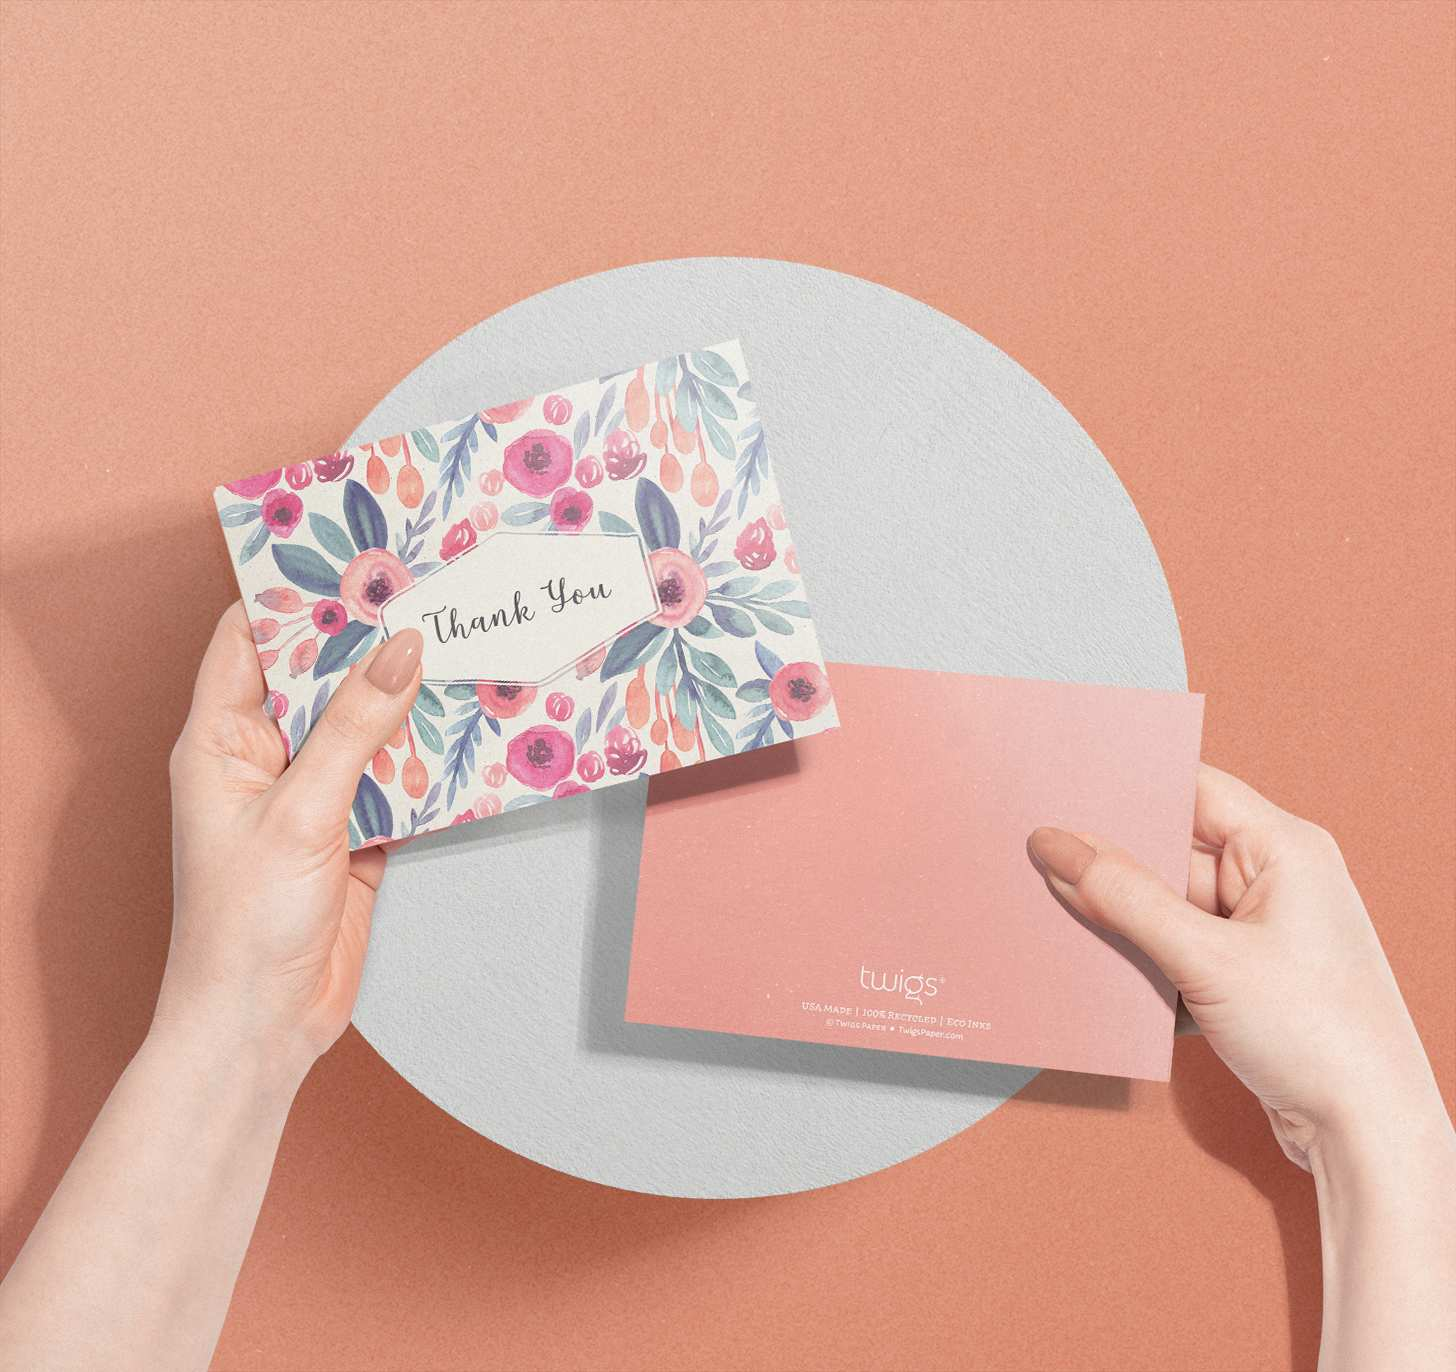 Hands holding Rose colored floral design thank you card